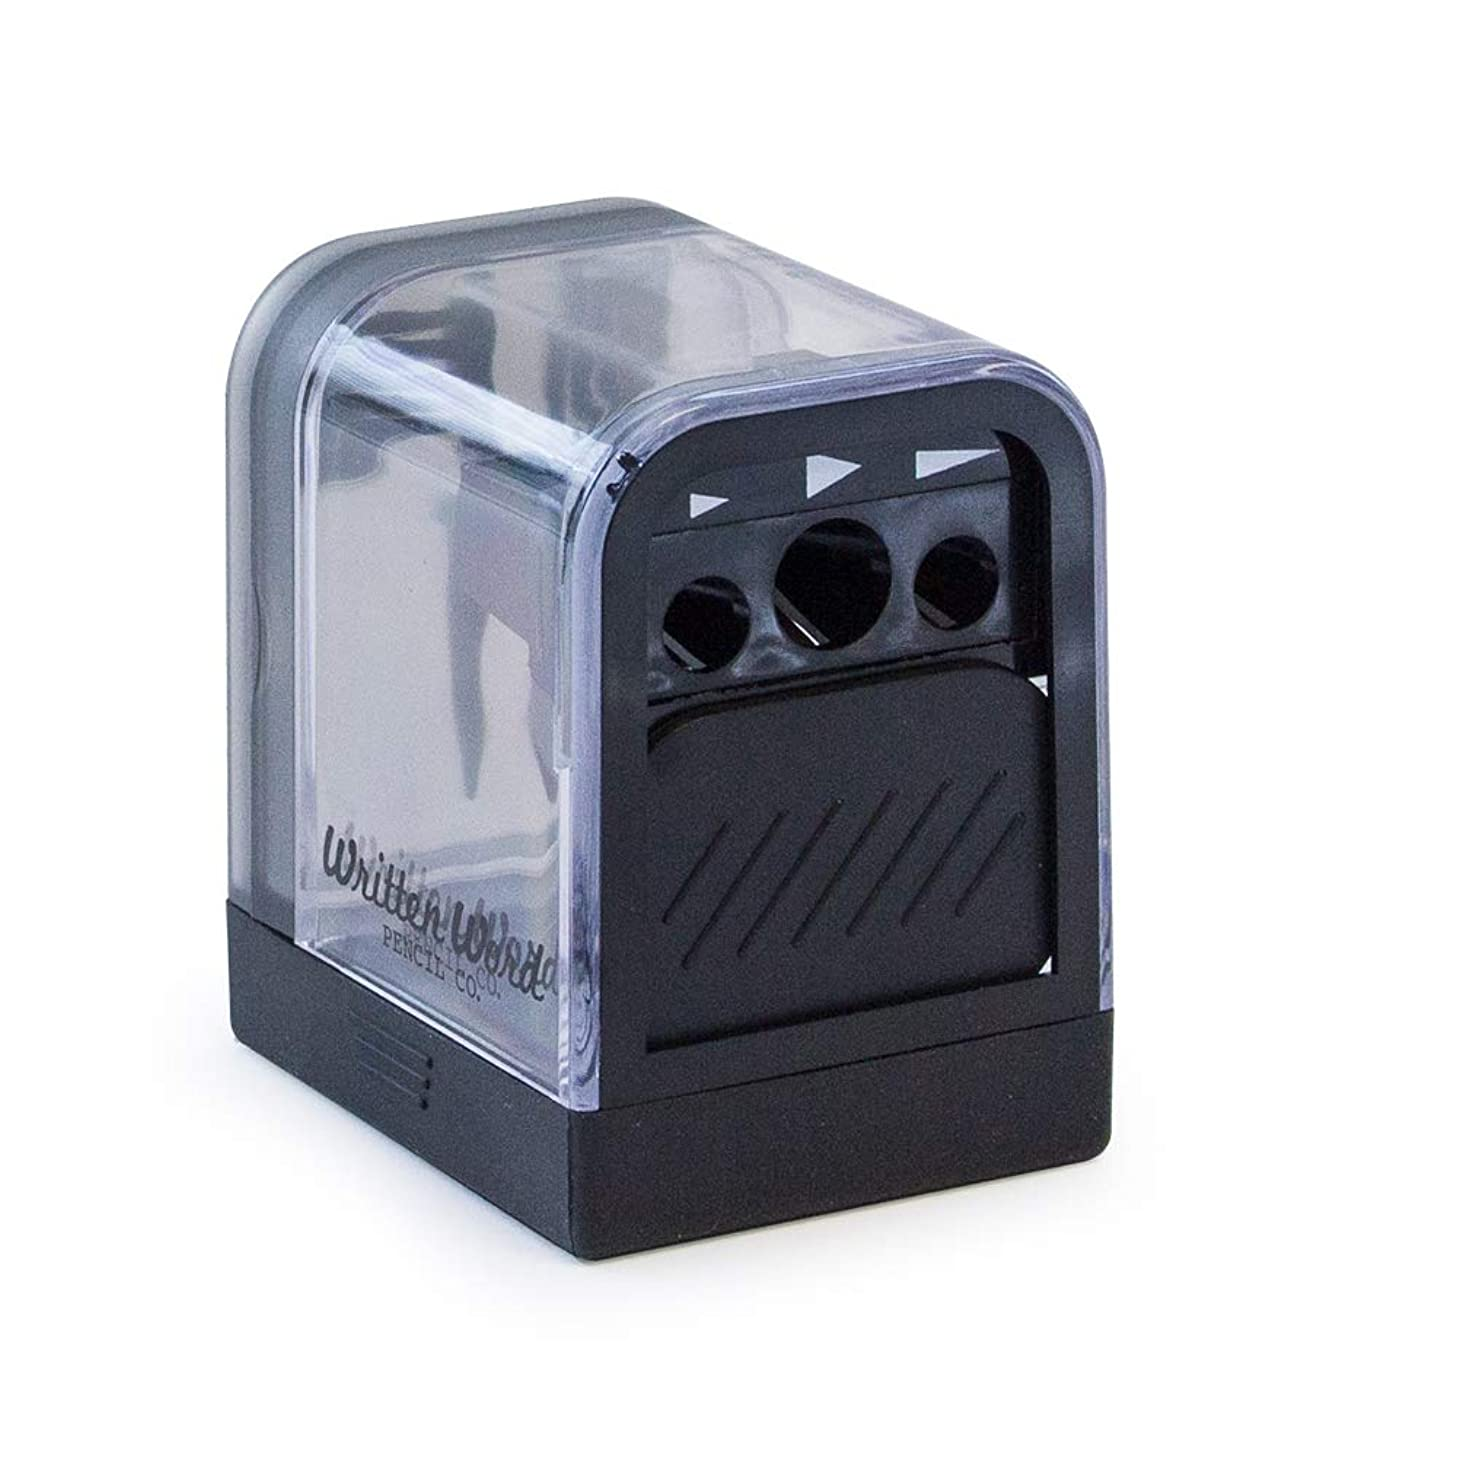 Written Word Pencil Co. World's Finest Pencil Sharpener with Extra-Large Capacity